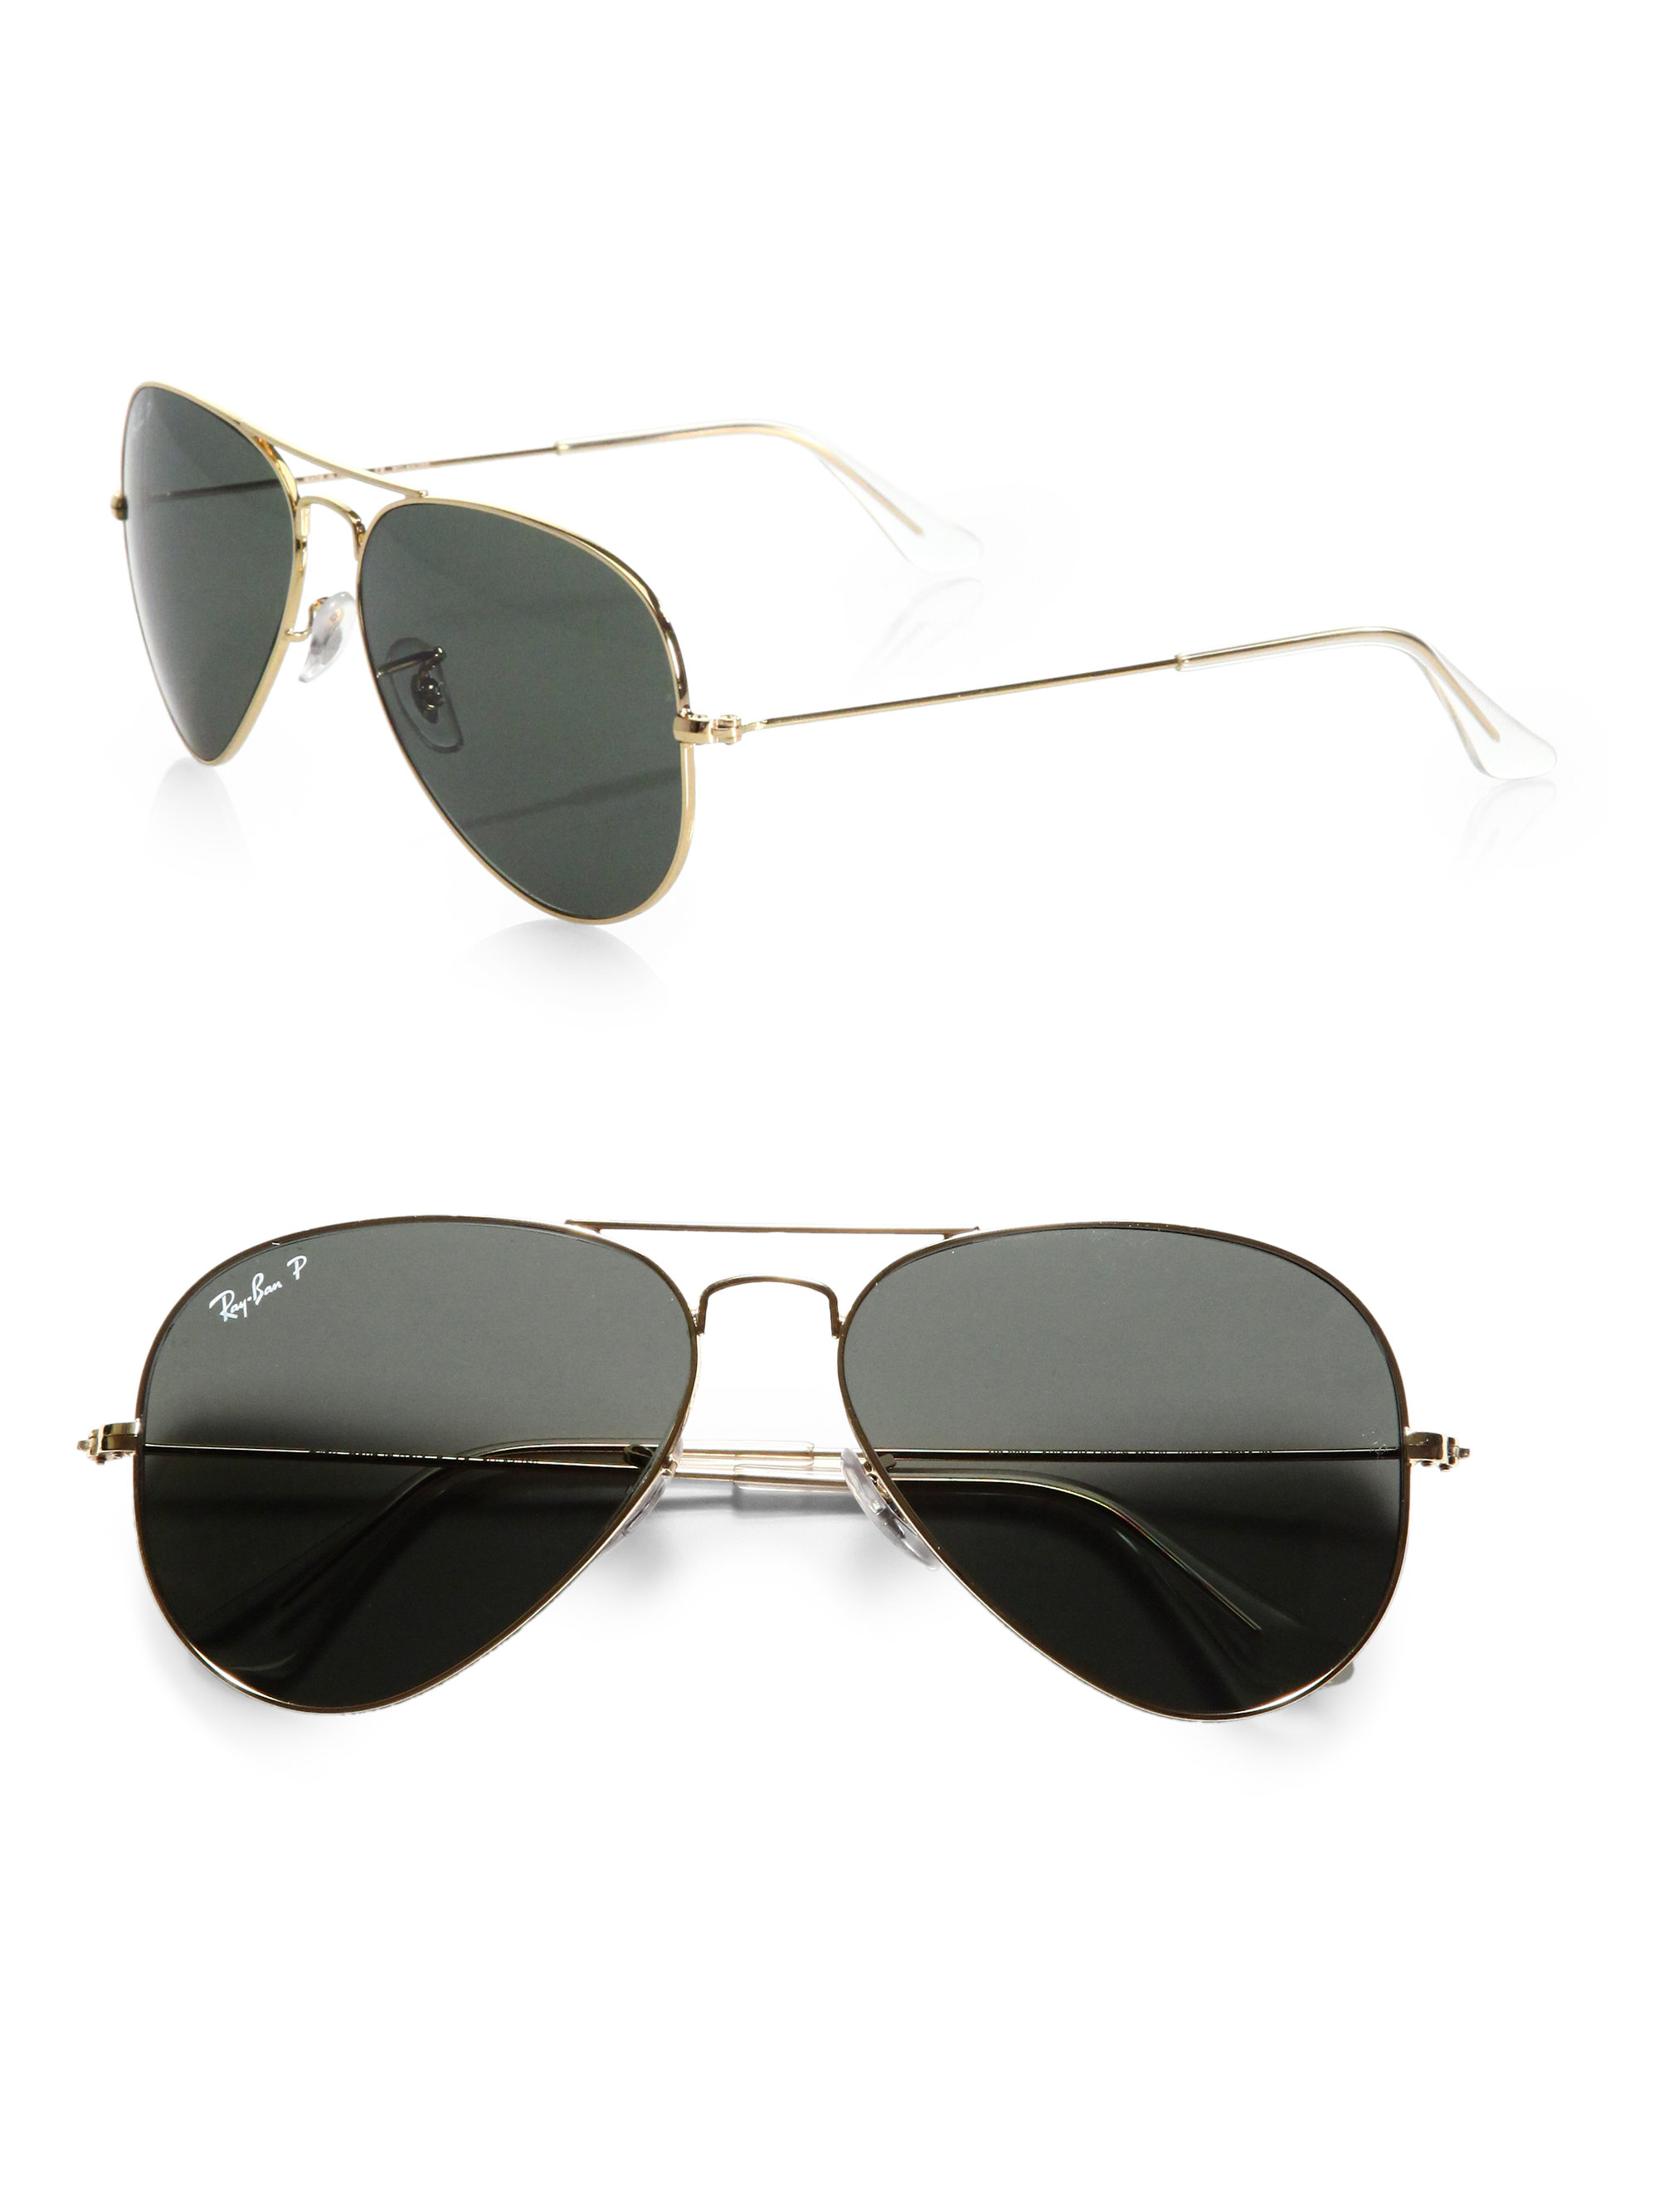 authentic ray ban aviator sunglasses  genuine ray ban aviator sunglasses